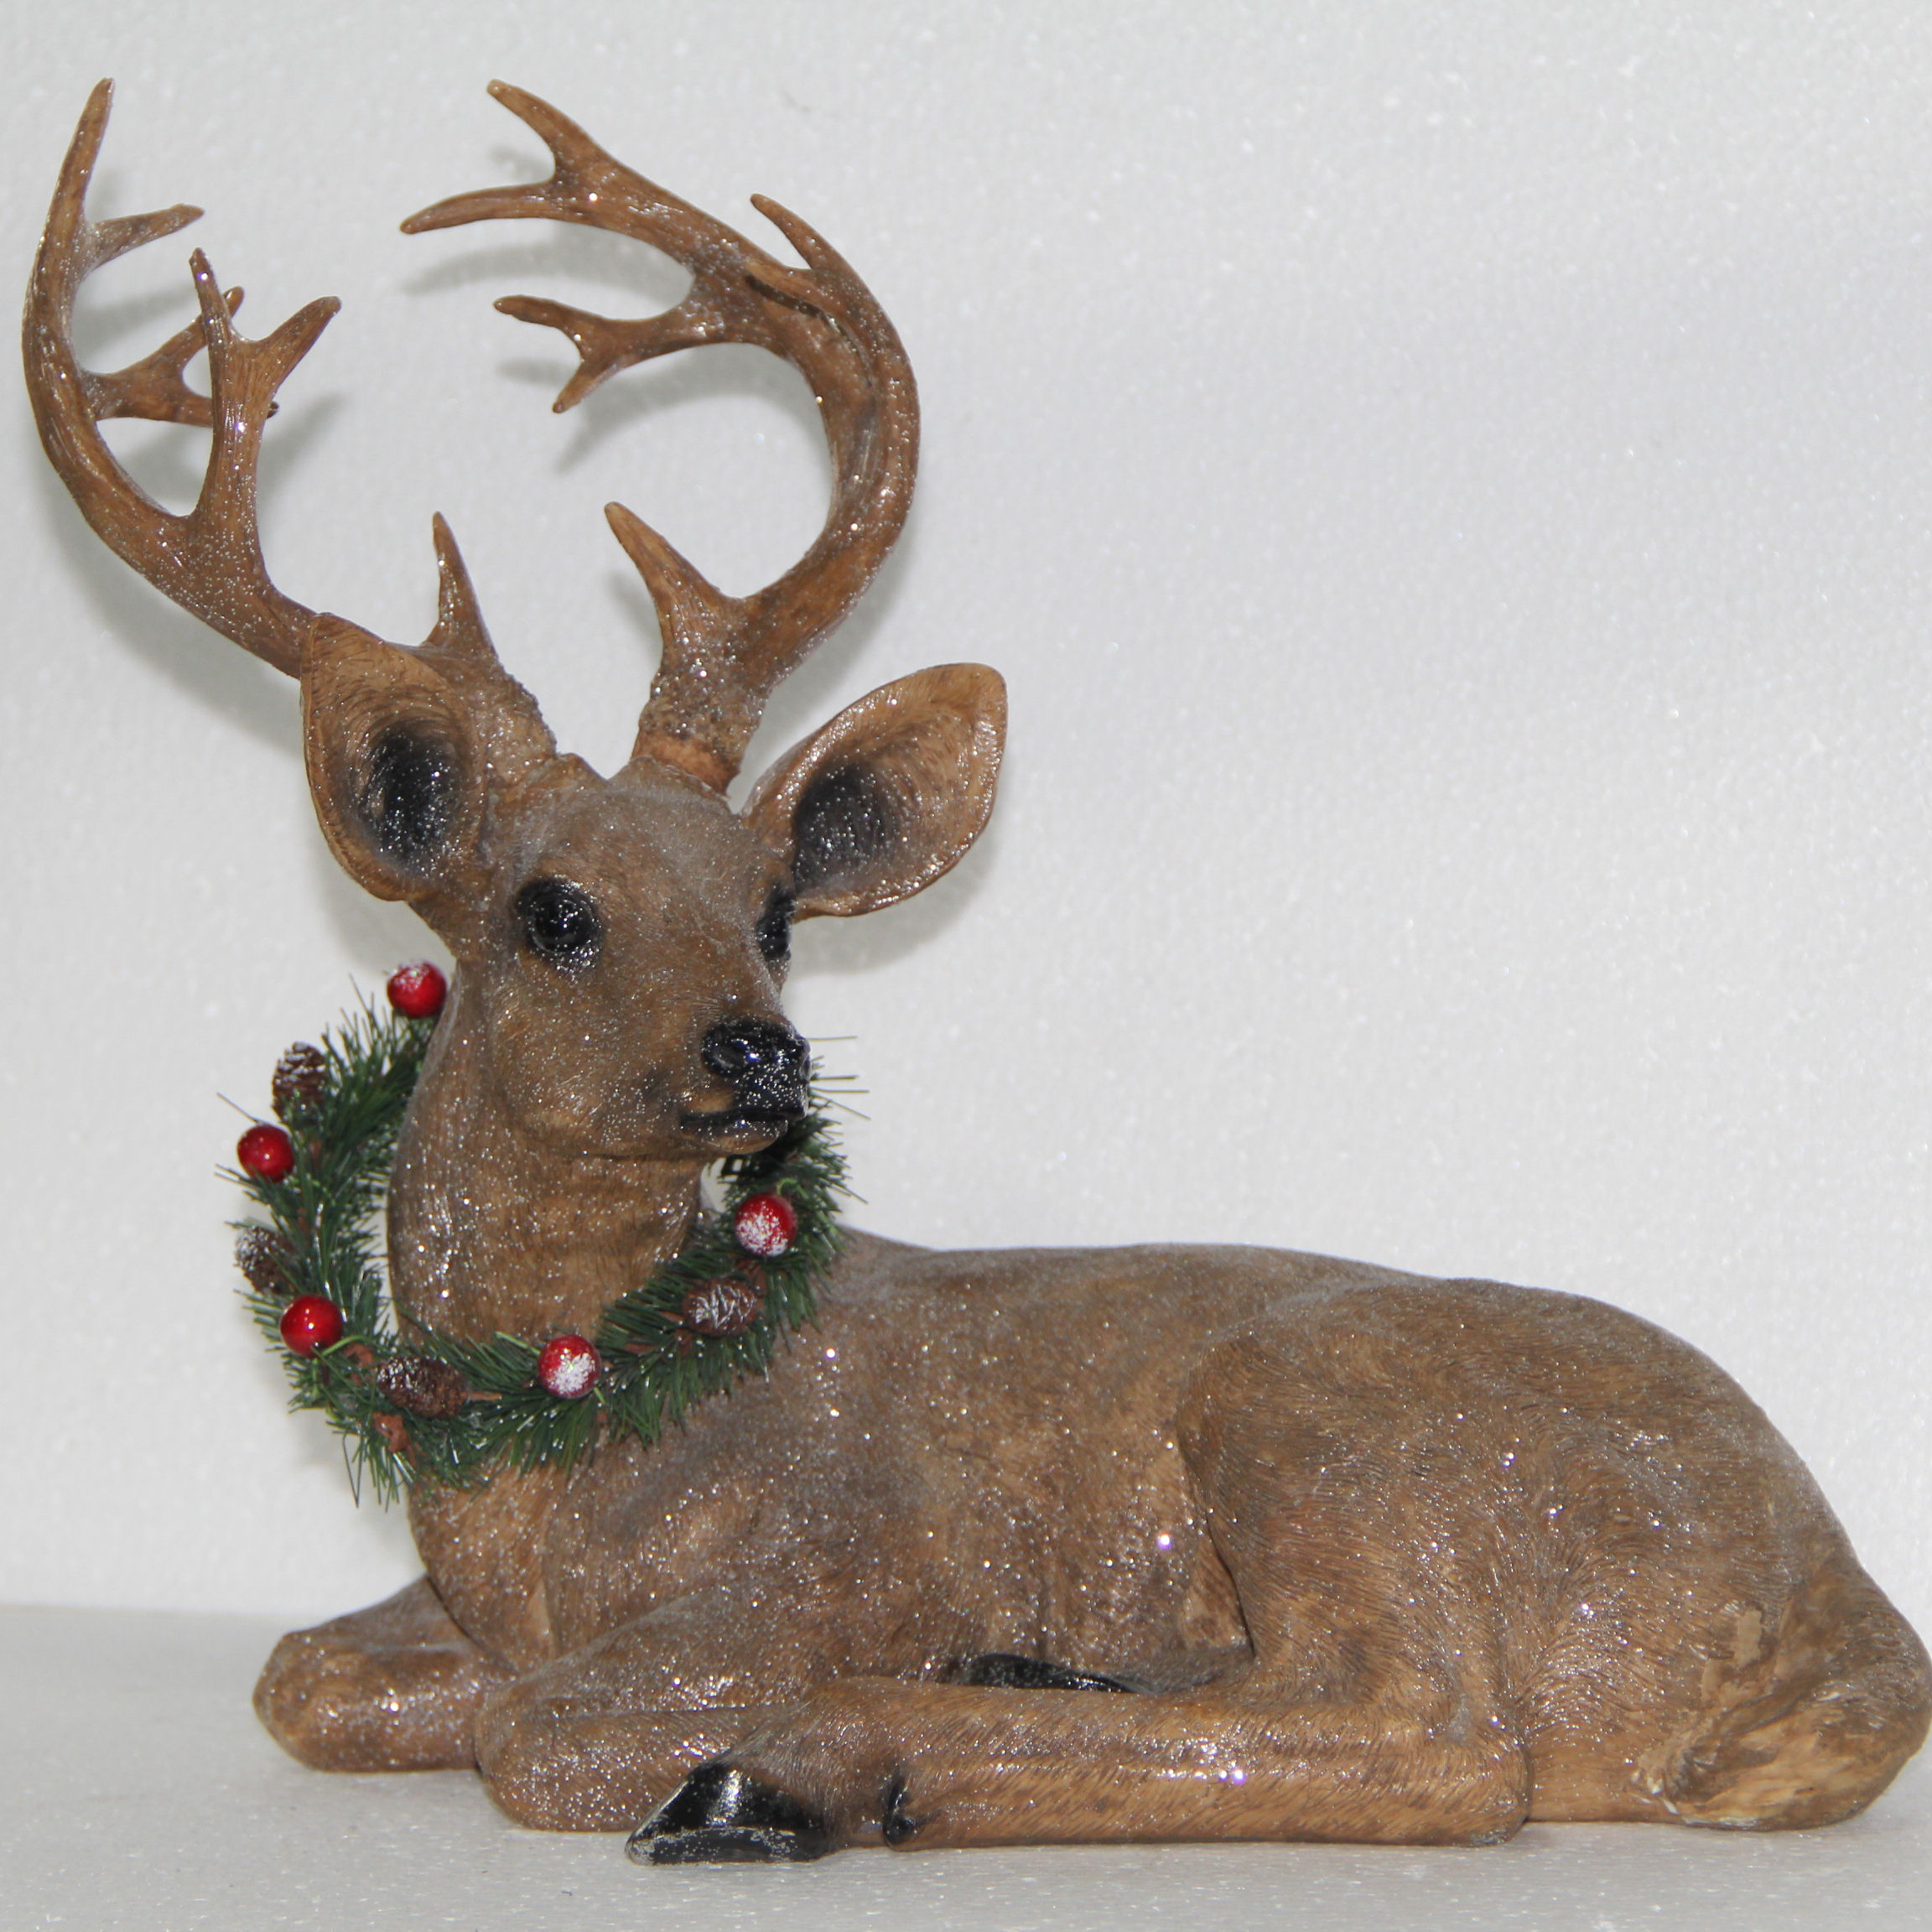 Resin crafts promotion gift garden figures for Christmas holidays Deer statue